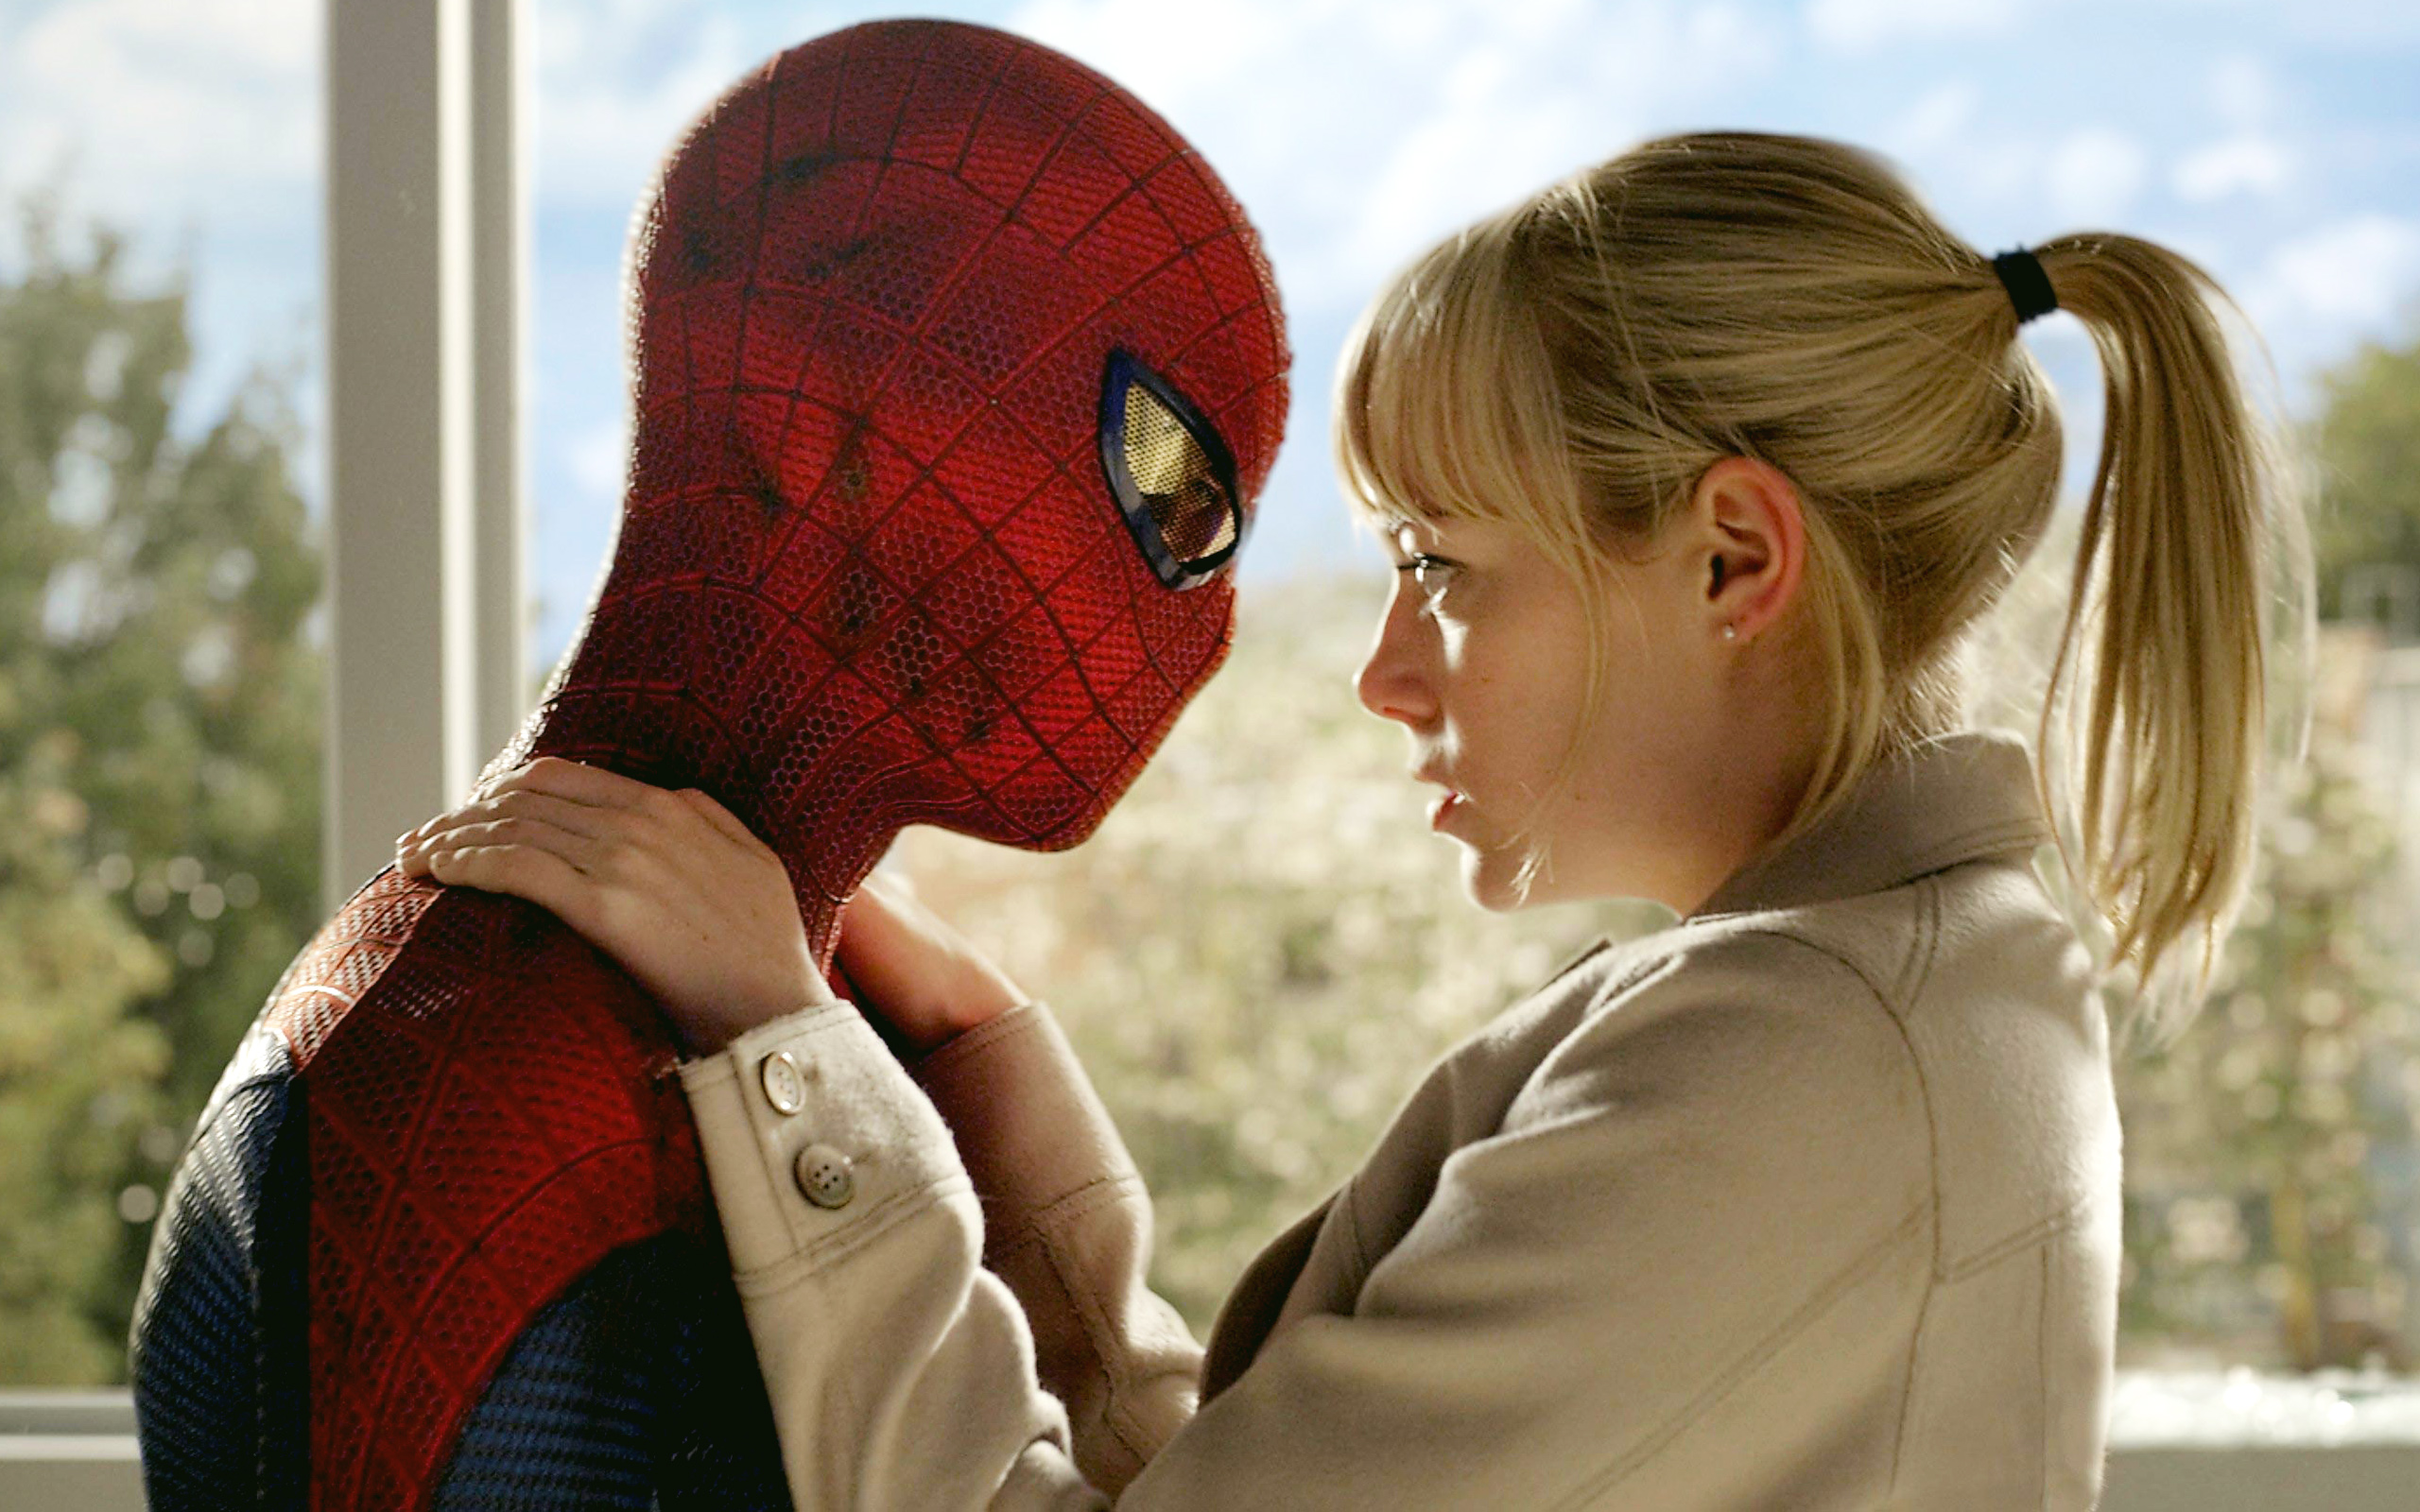 Spider Man and Gwen Stacy wallpaper